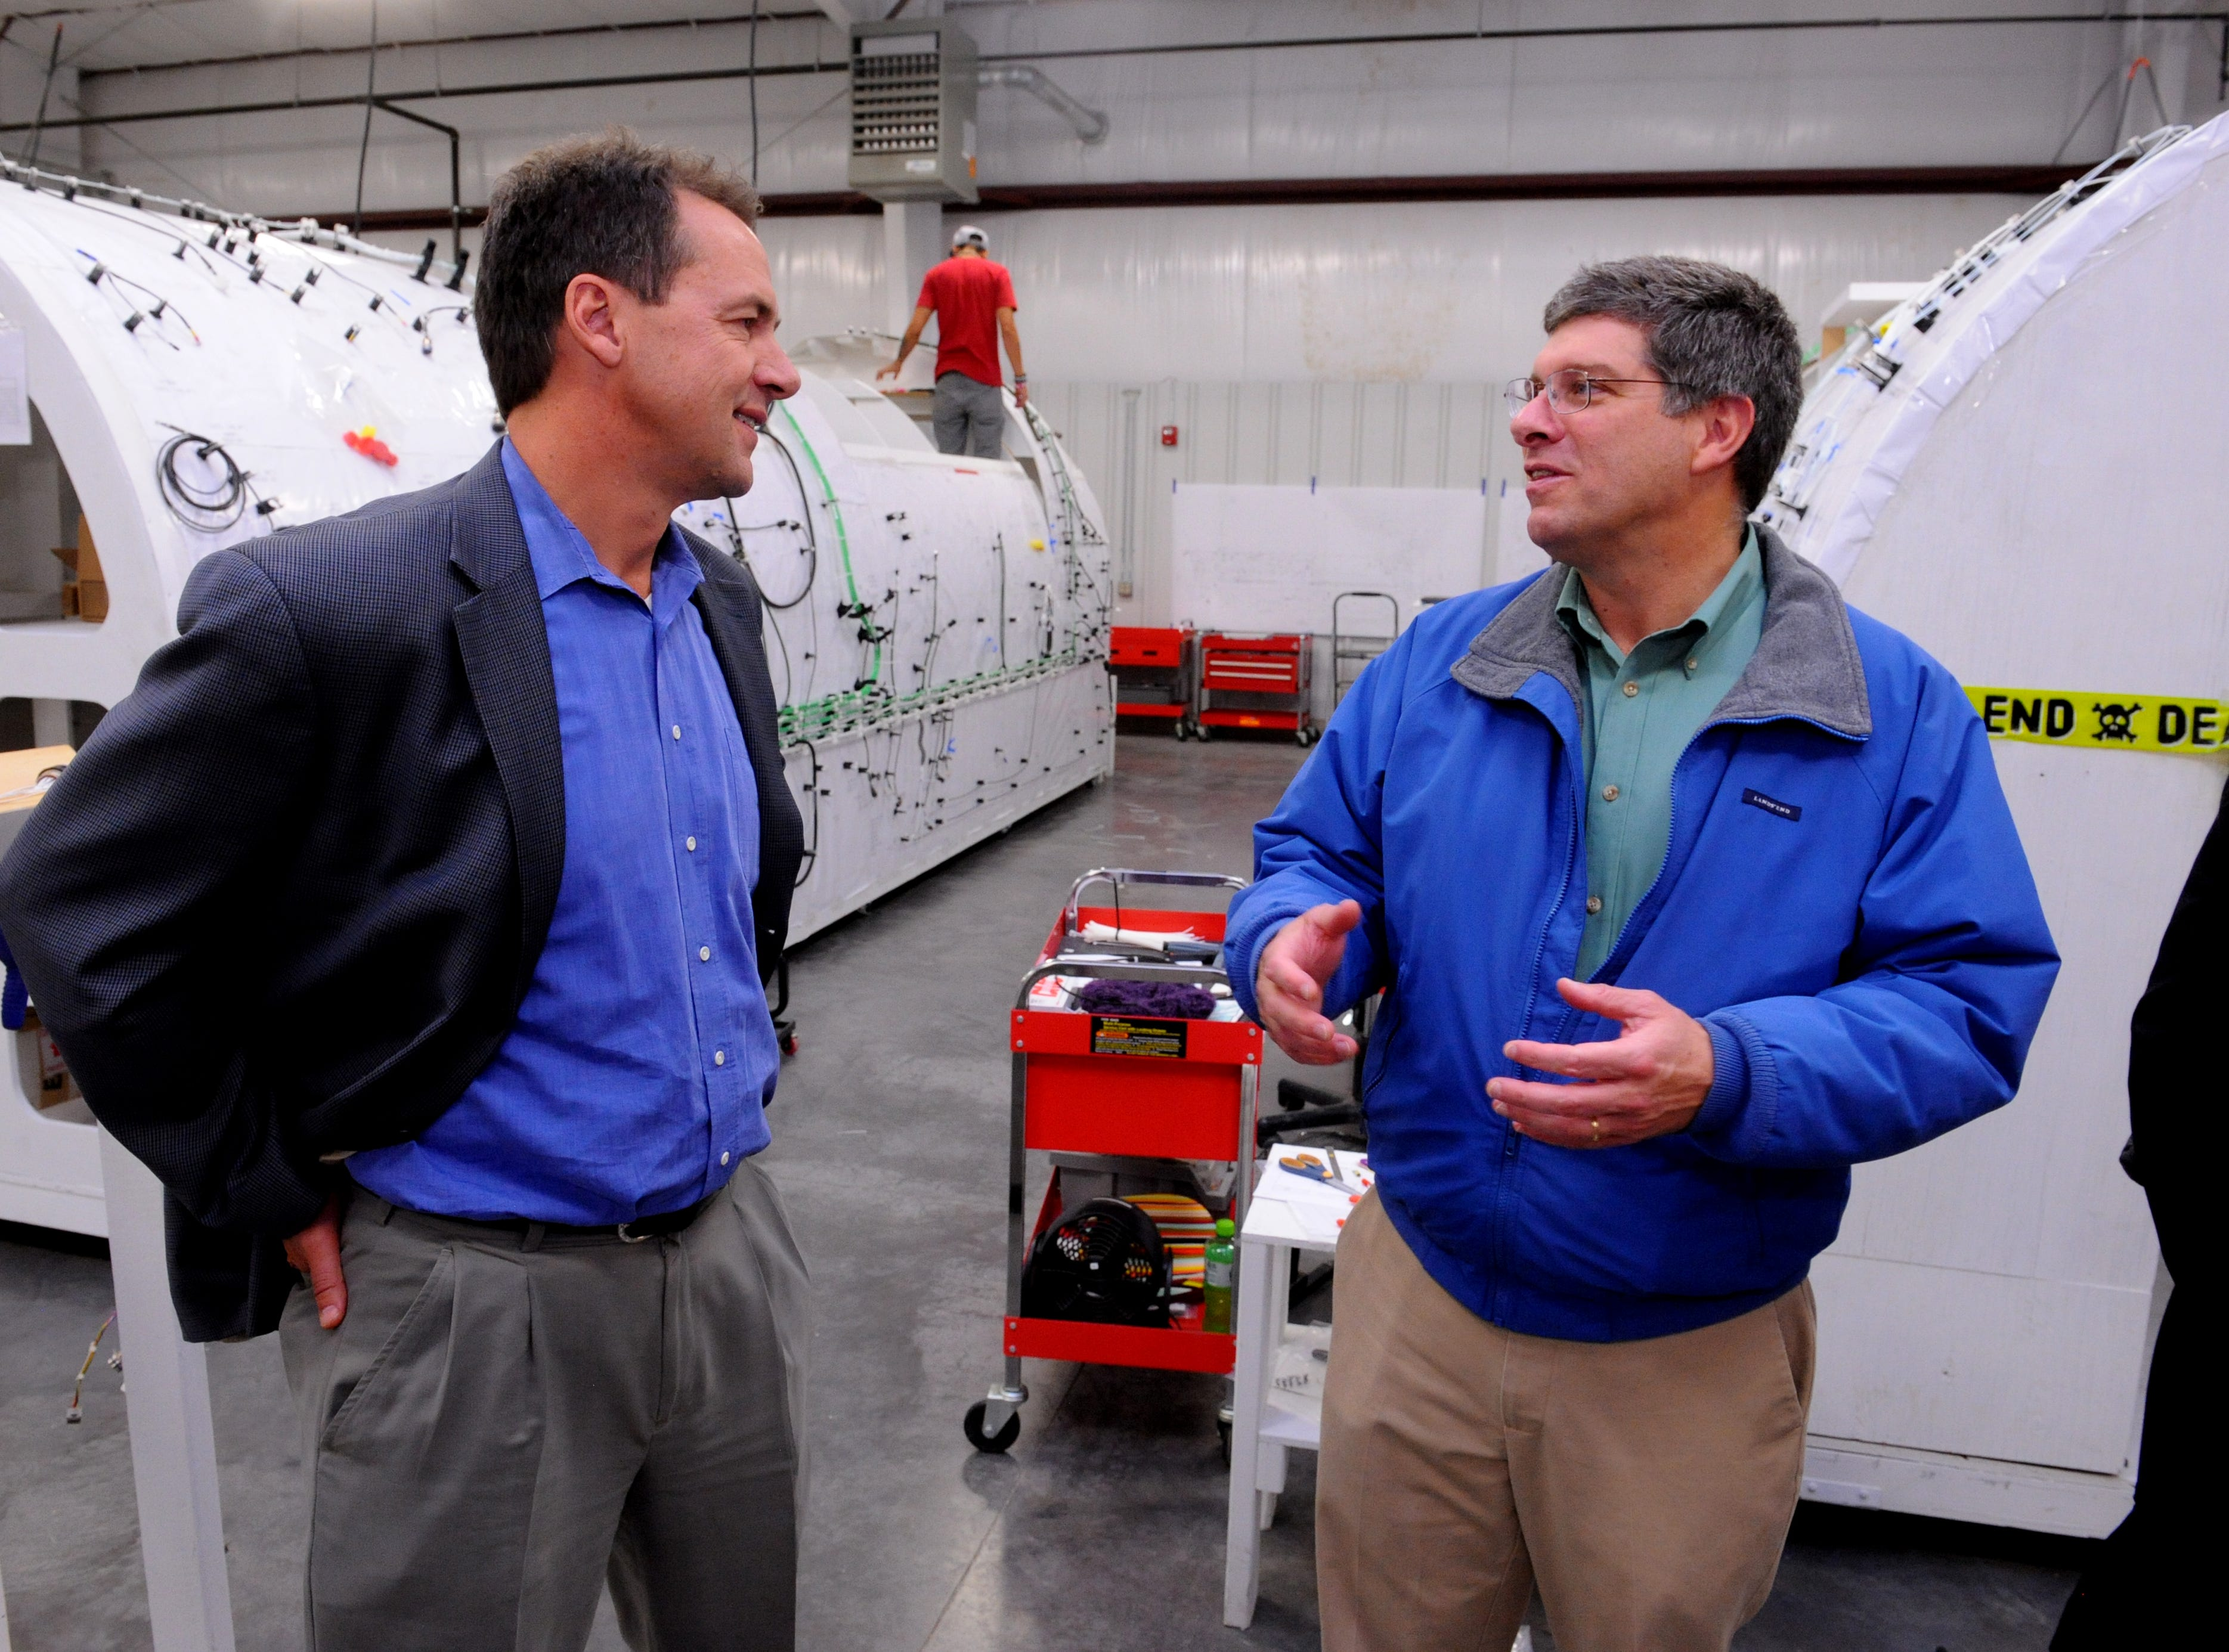 Montana Gov. Steve Bullock, left, talks with Brett Doney of the Great Falls Development Authority while touring the EMTEQ manufacturing warehouse. Last year, EMTEQ was awarded $255,000 in workforce training grant money from the state. TRIBUNE PHOTO FILE/RION SANDERS Montana gubernatorial candidate Steve Bullock, left, talks with Brett Doney of the Great Falls Devolpment Authority while touring the EMTEQ manufacturing warehouse while campaigning in Great Falls on Friday. TRIBUNE PHOTO/RION SANDERS